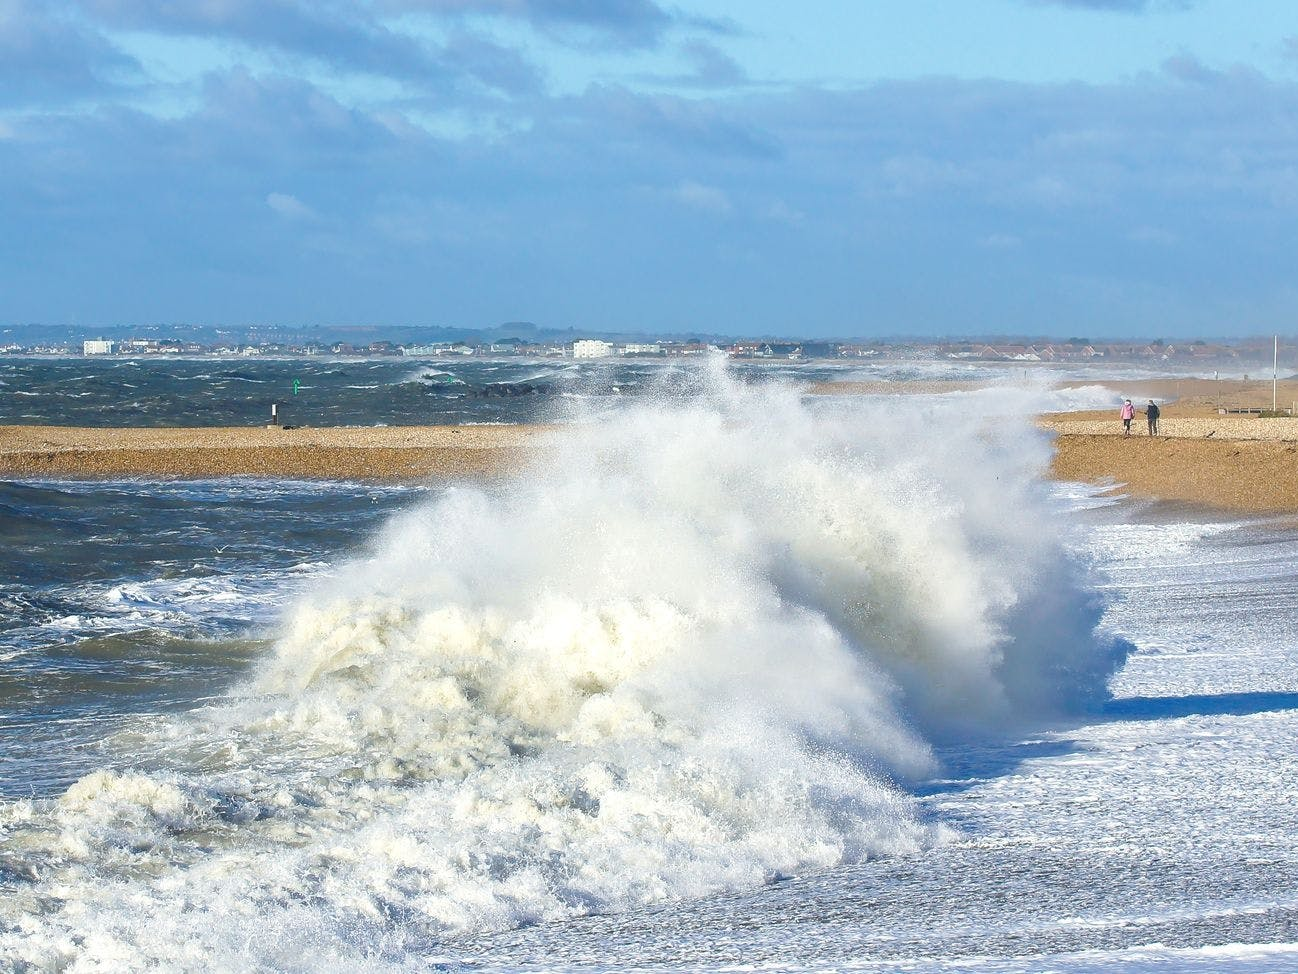 Waves crashing on the beach at Selsey